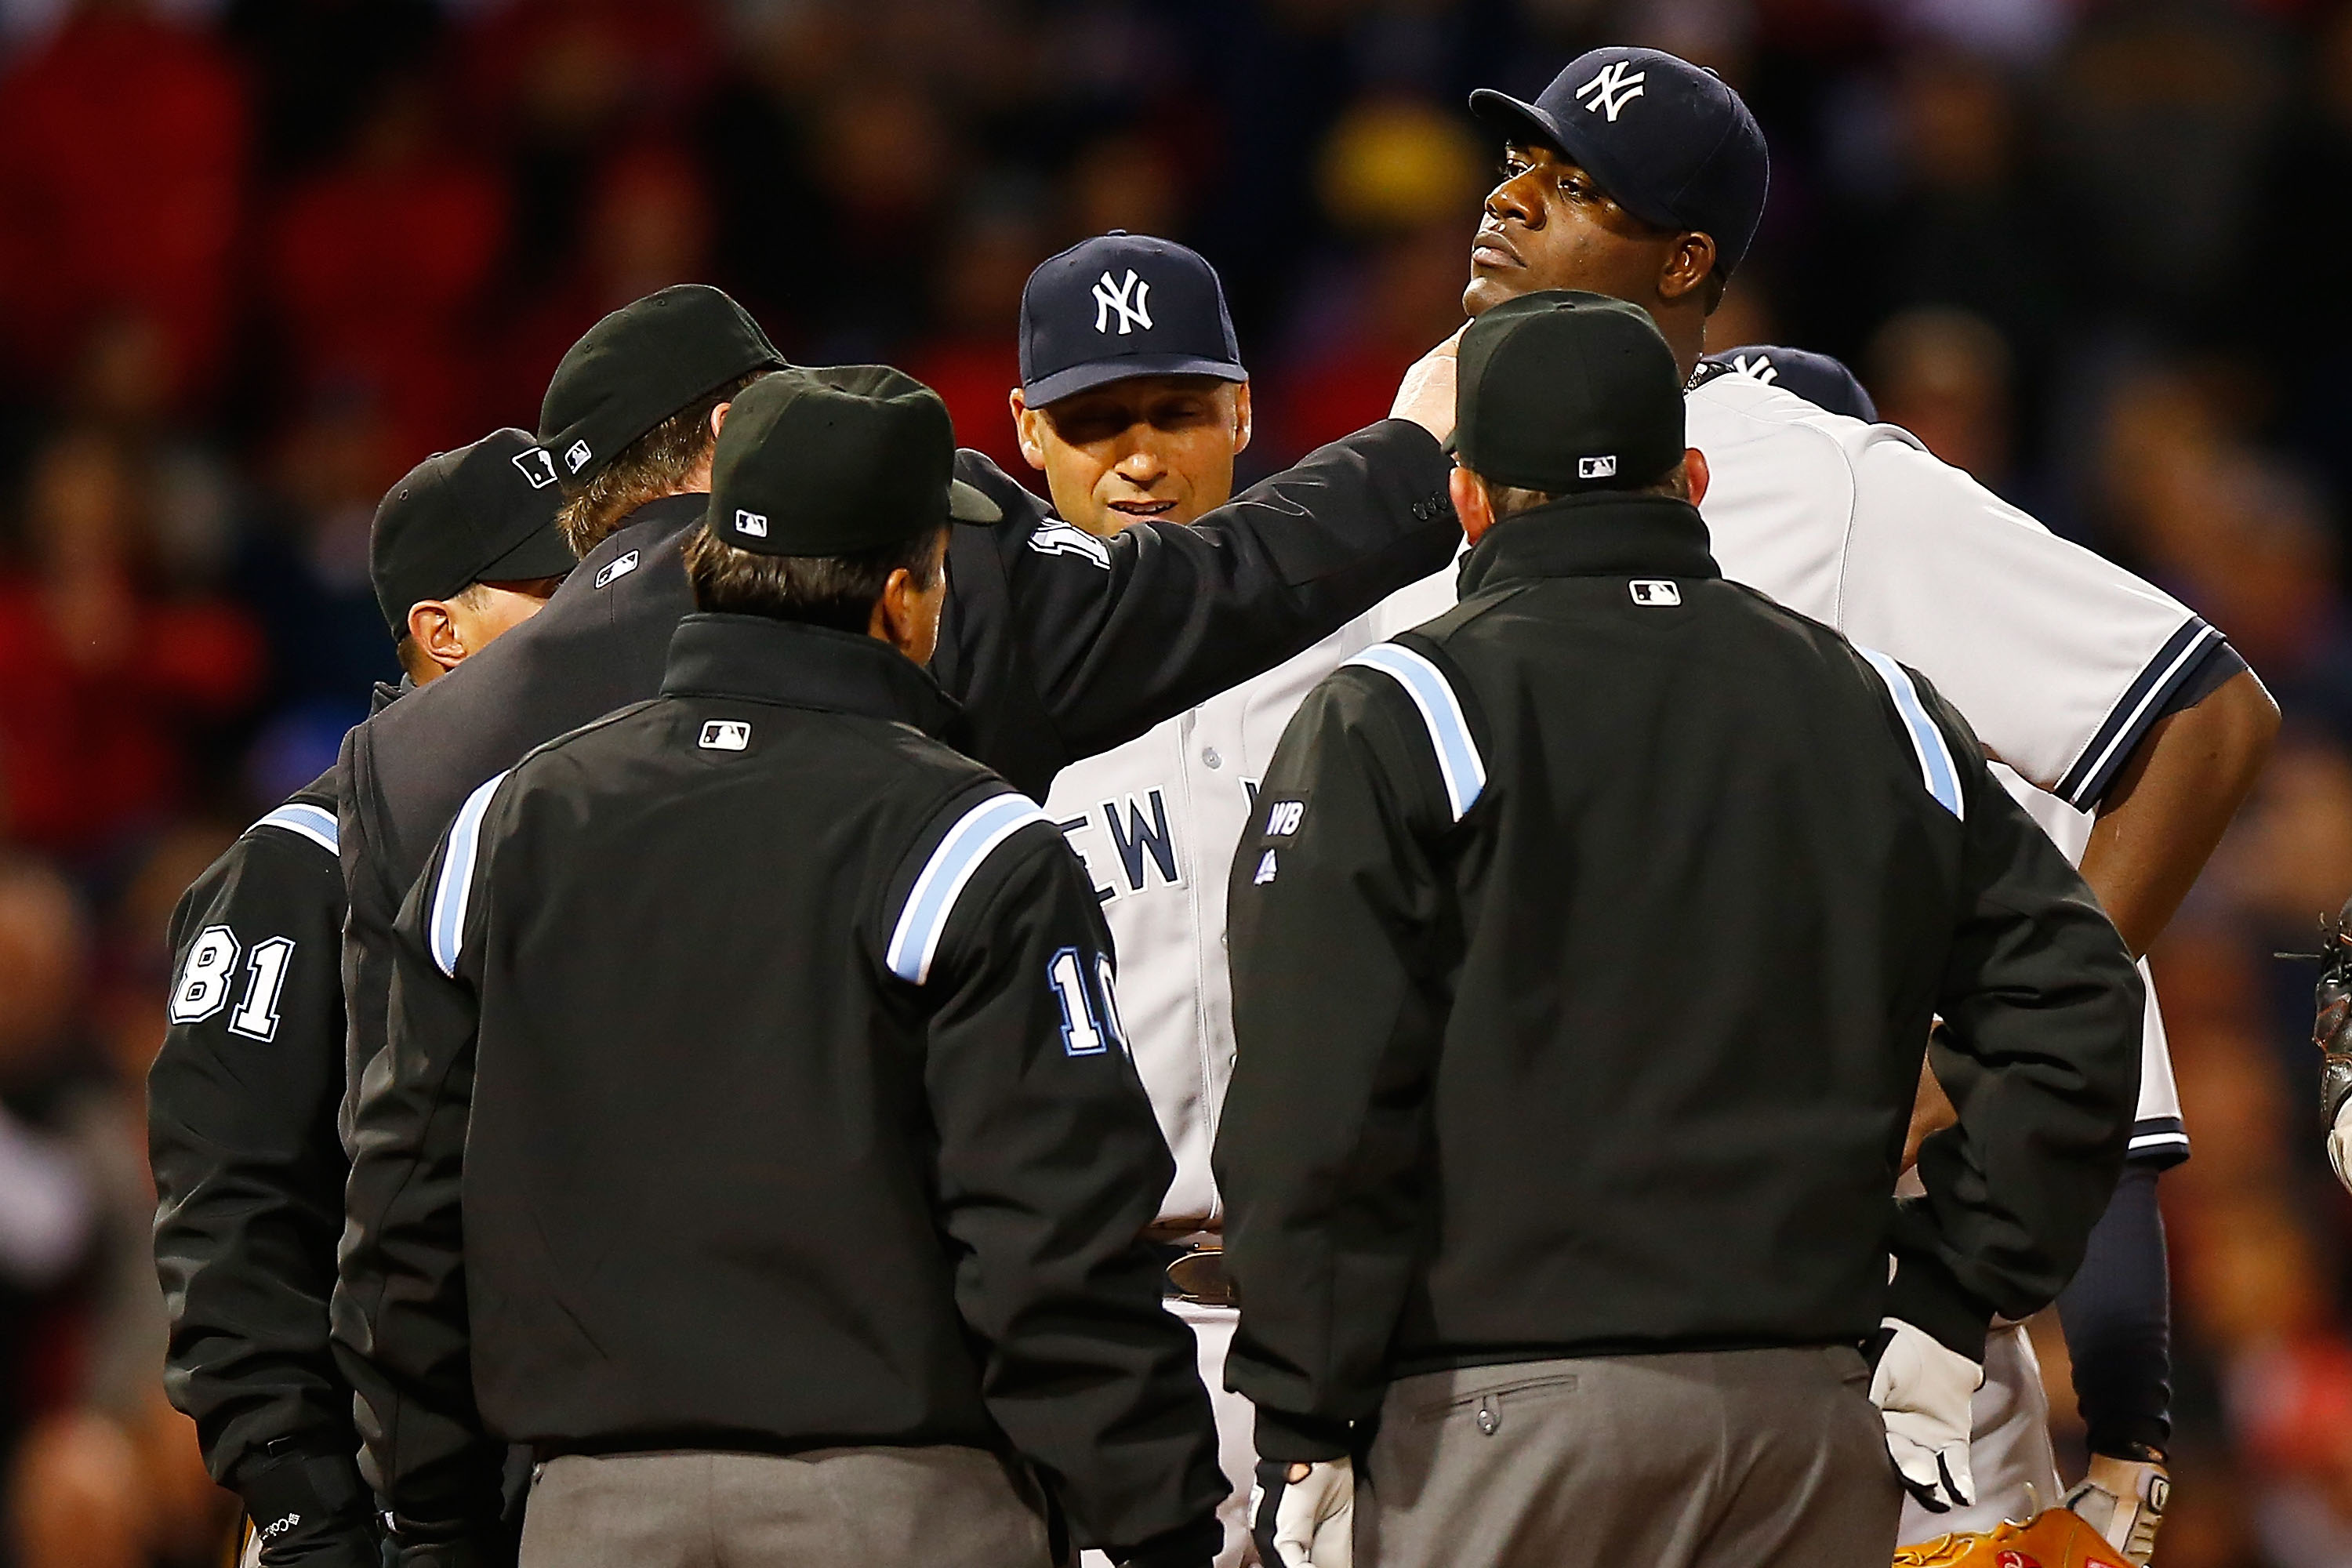 Home plate umpire Gerry Davis checks out a substance on the neck of Michael Pineda as New York Yankees shortstop Derek Jeter looks on.